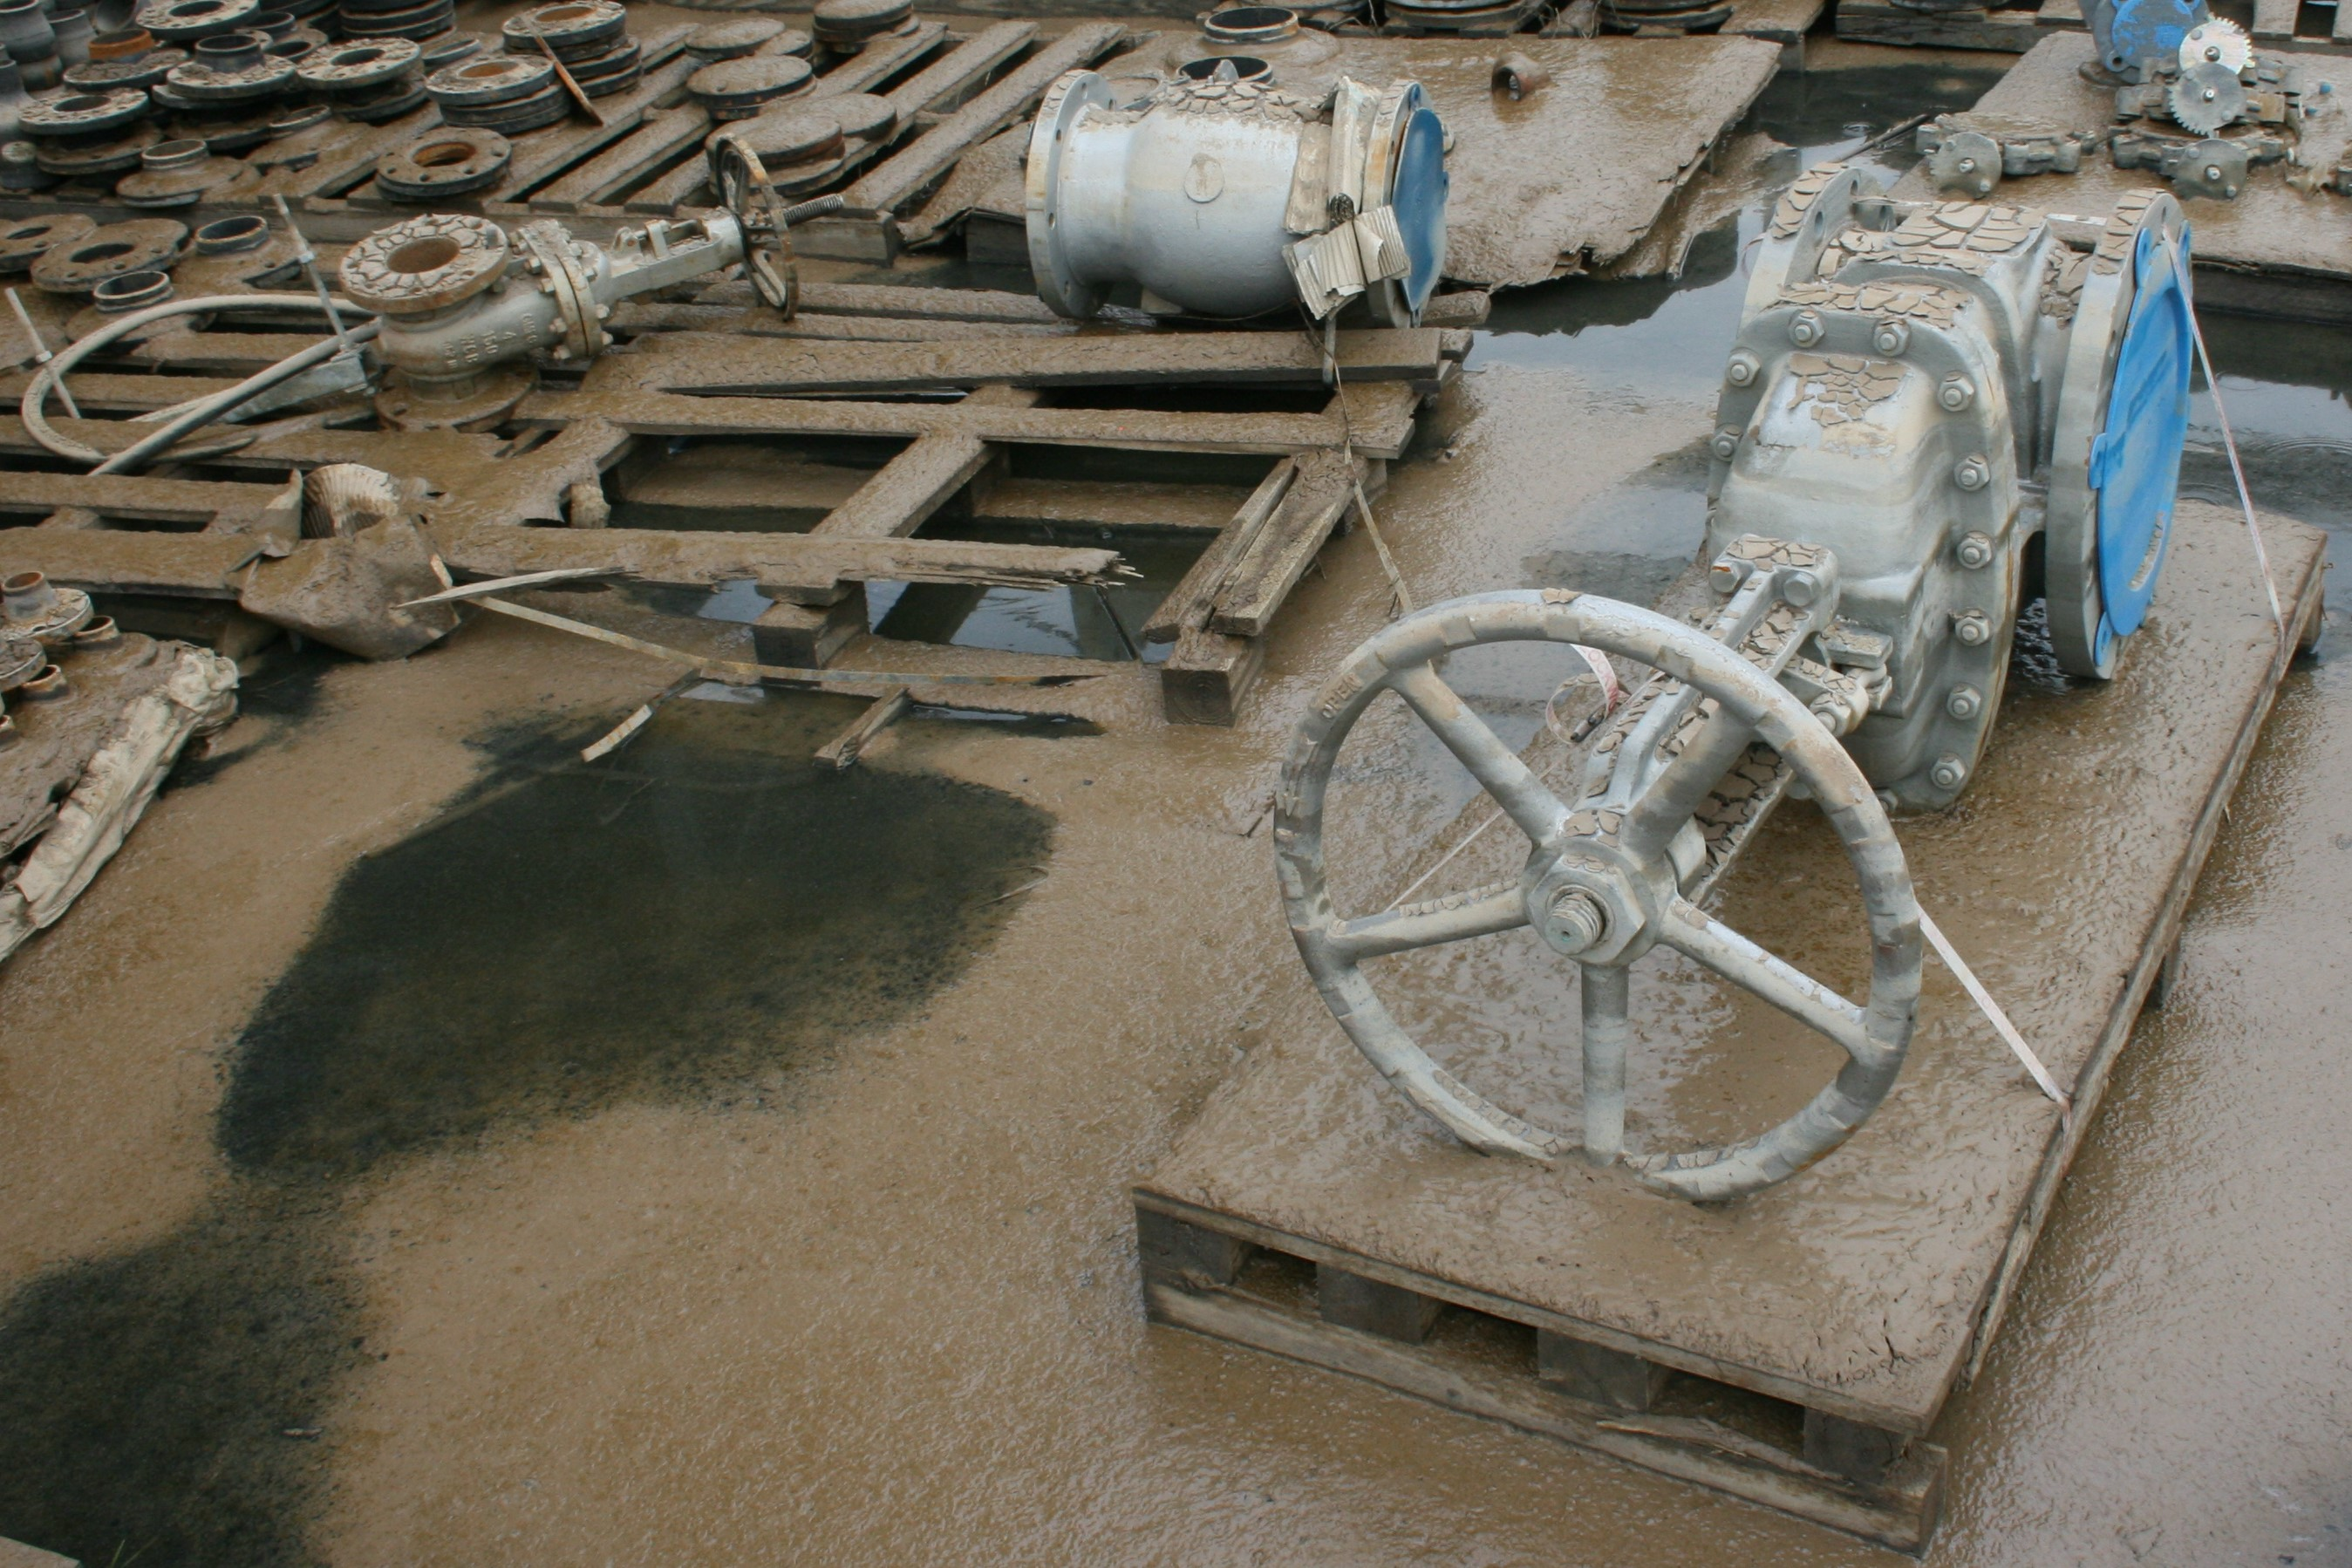 Valves and flanges in a lay-down area that flooded during a hurricane